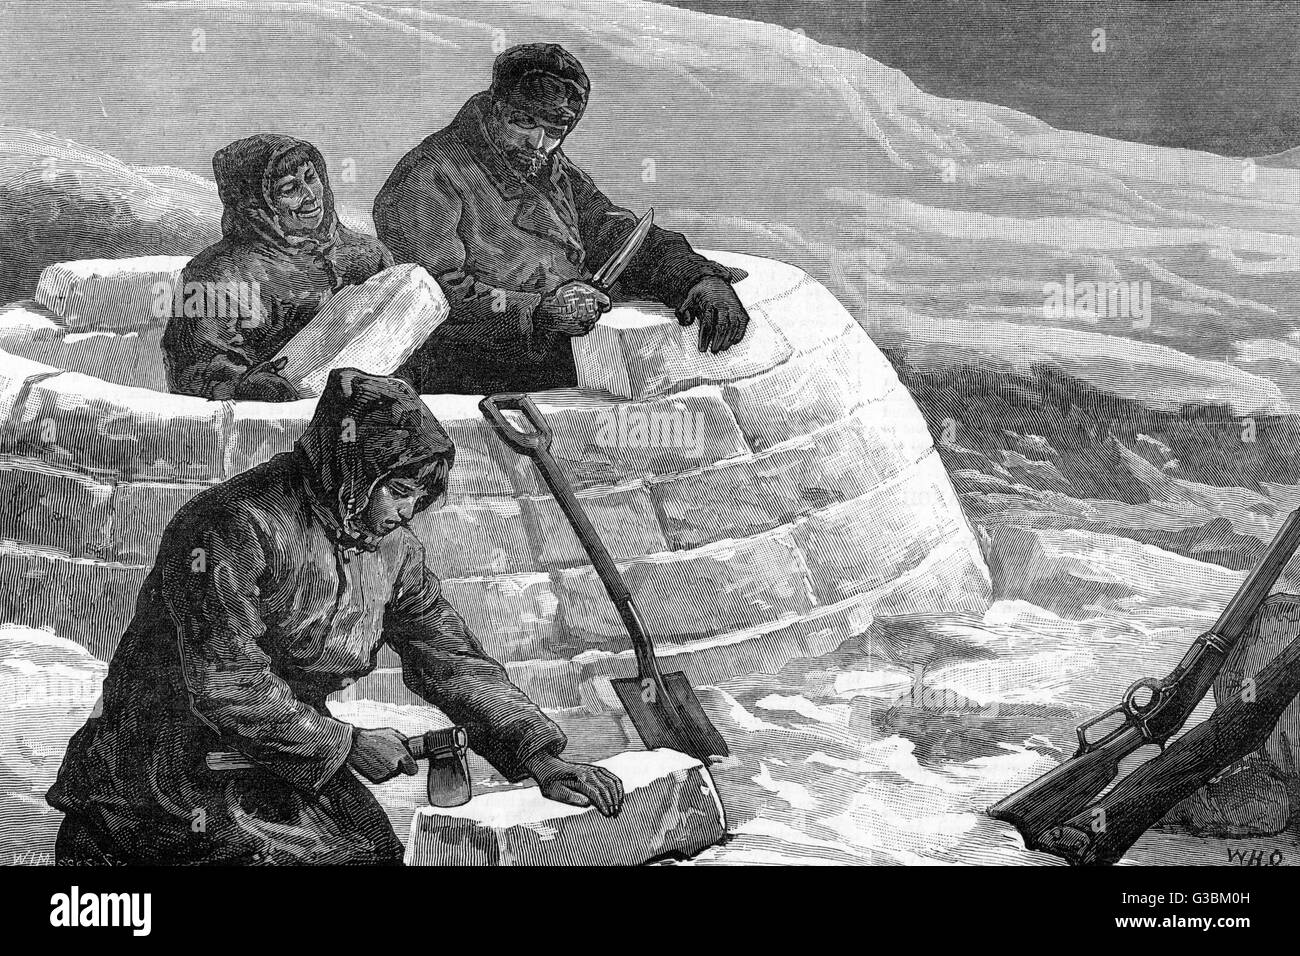 Building an igloo, or snow- house, using blocks of ice